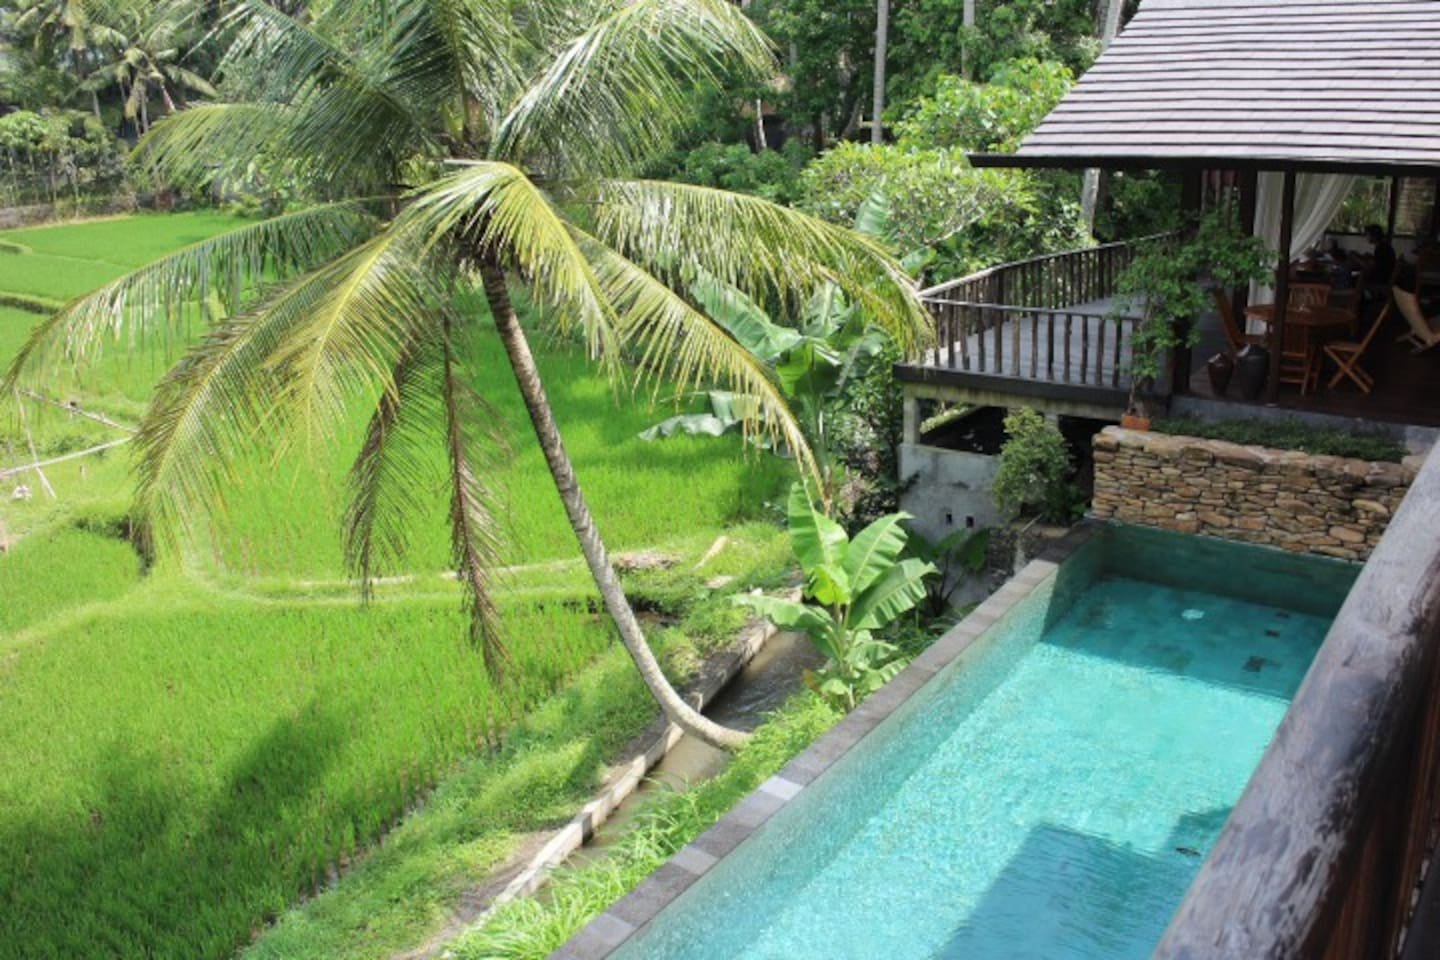 Aerial photo of the pool overlooking the rice fields.